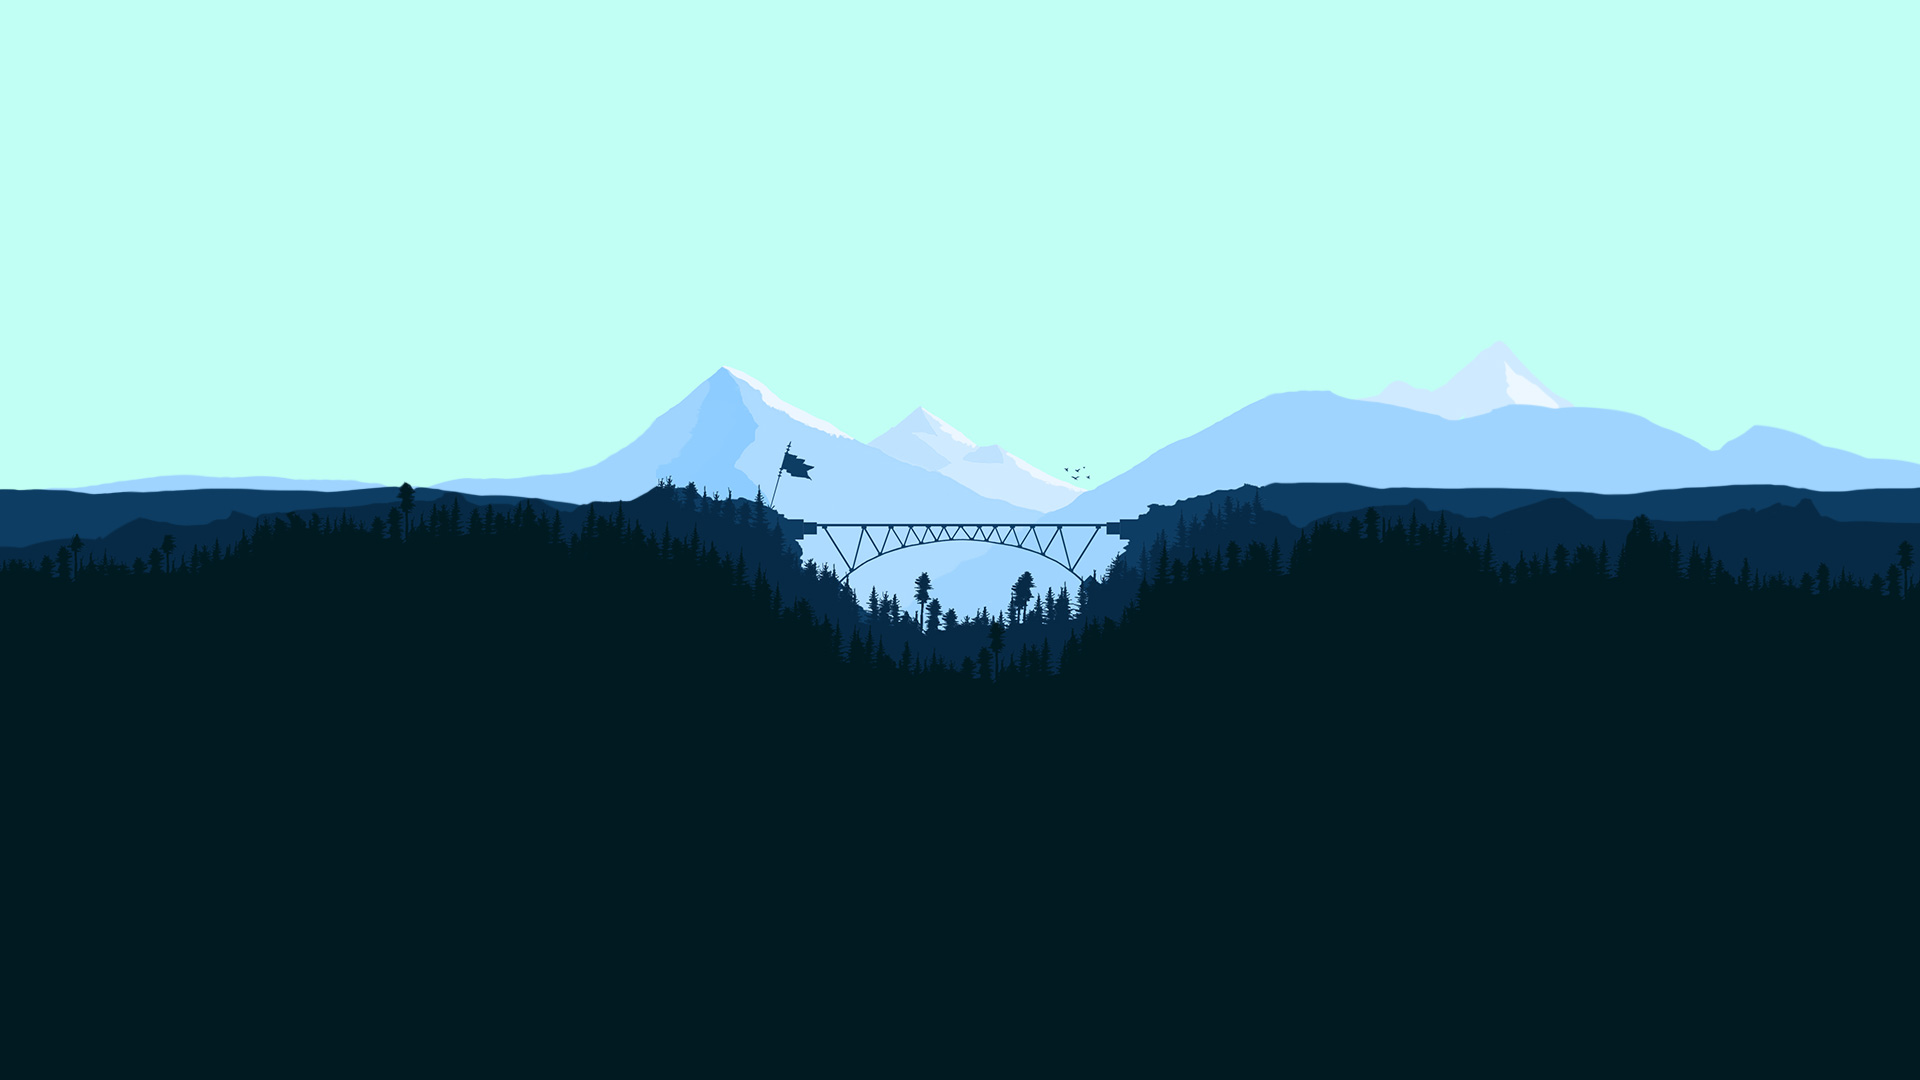 Bridge Between Two Mountains Forest Minimalism Artwork, HD